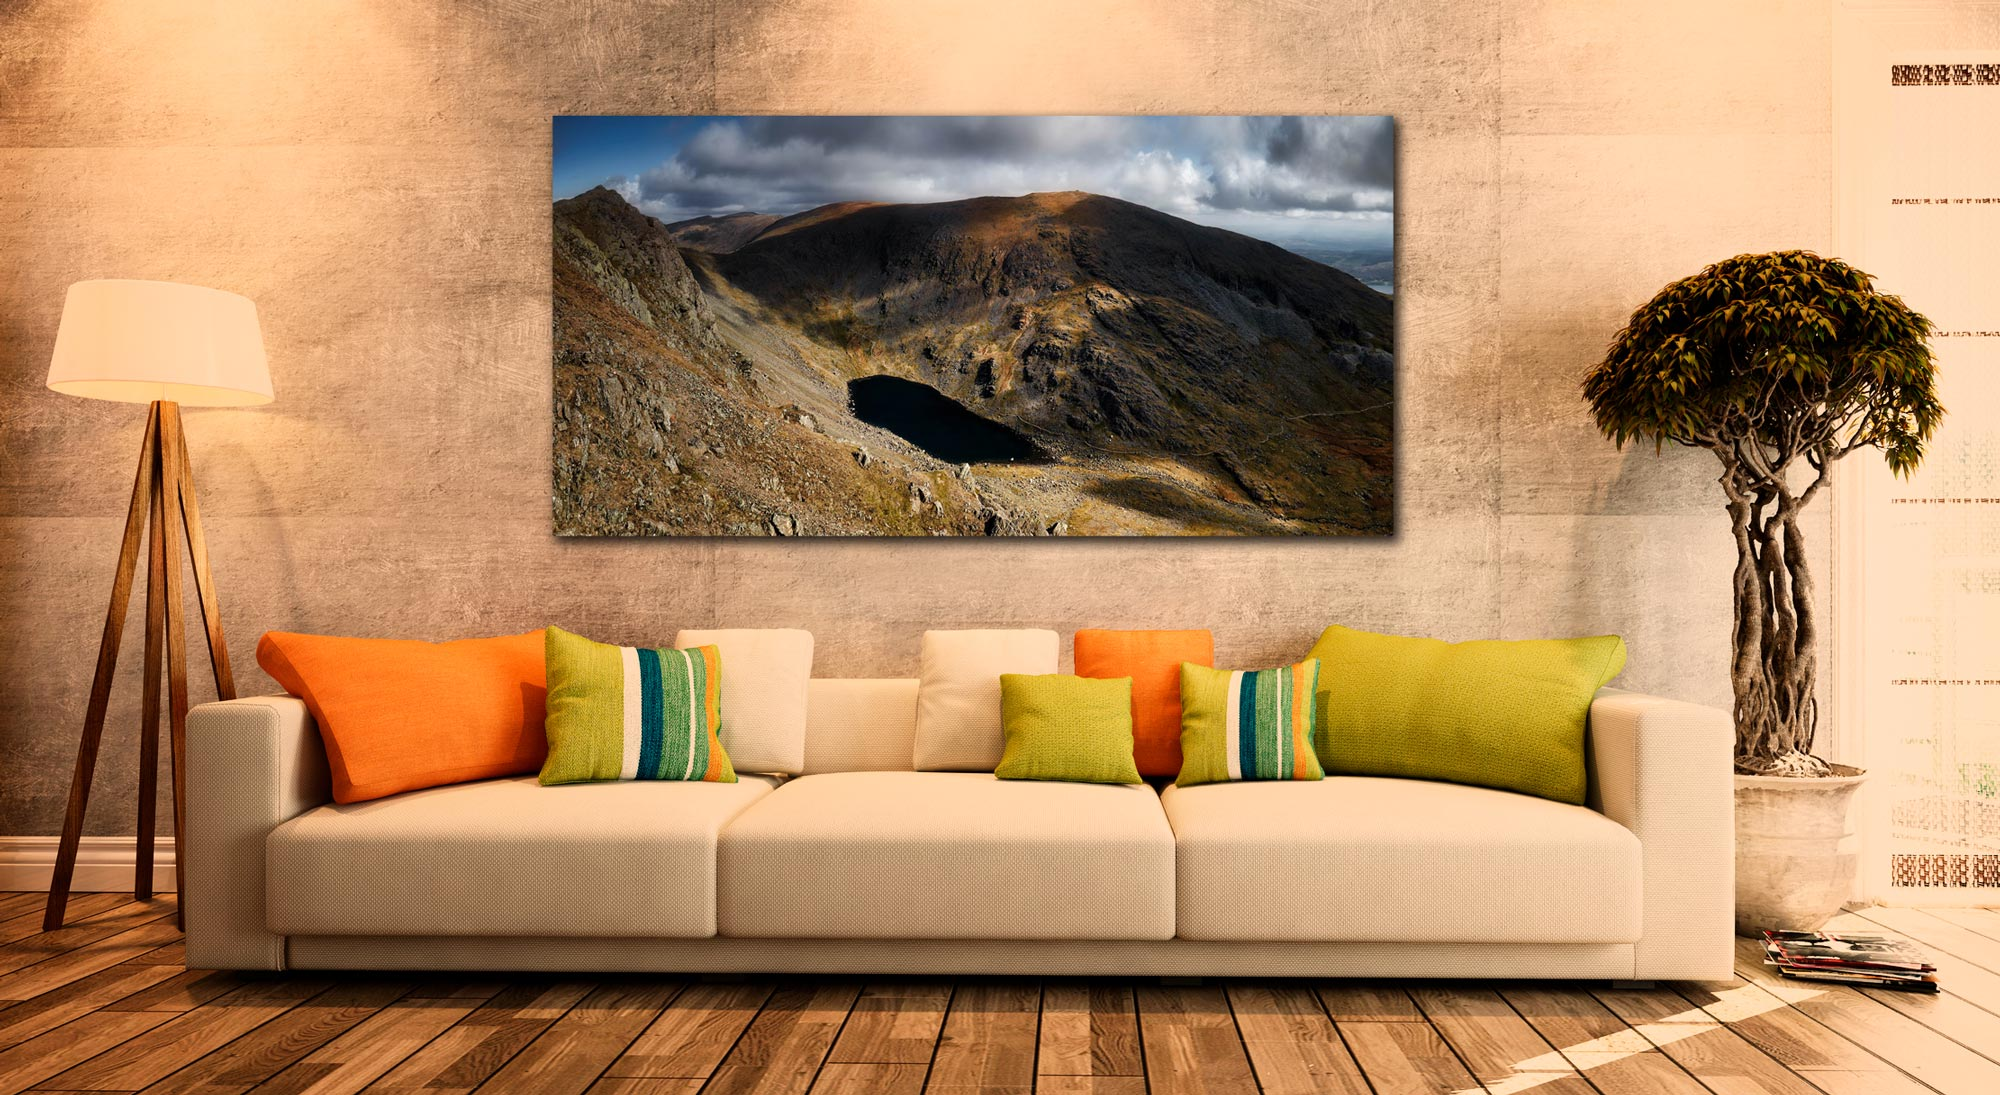 Goats Water and Coniston Old Man - Print Aluminium Backing With Acrylic Glazing on Wall